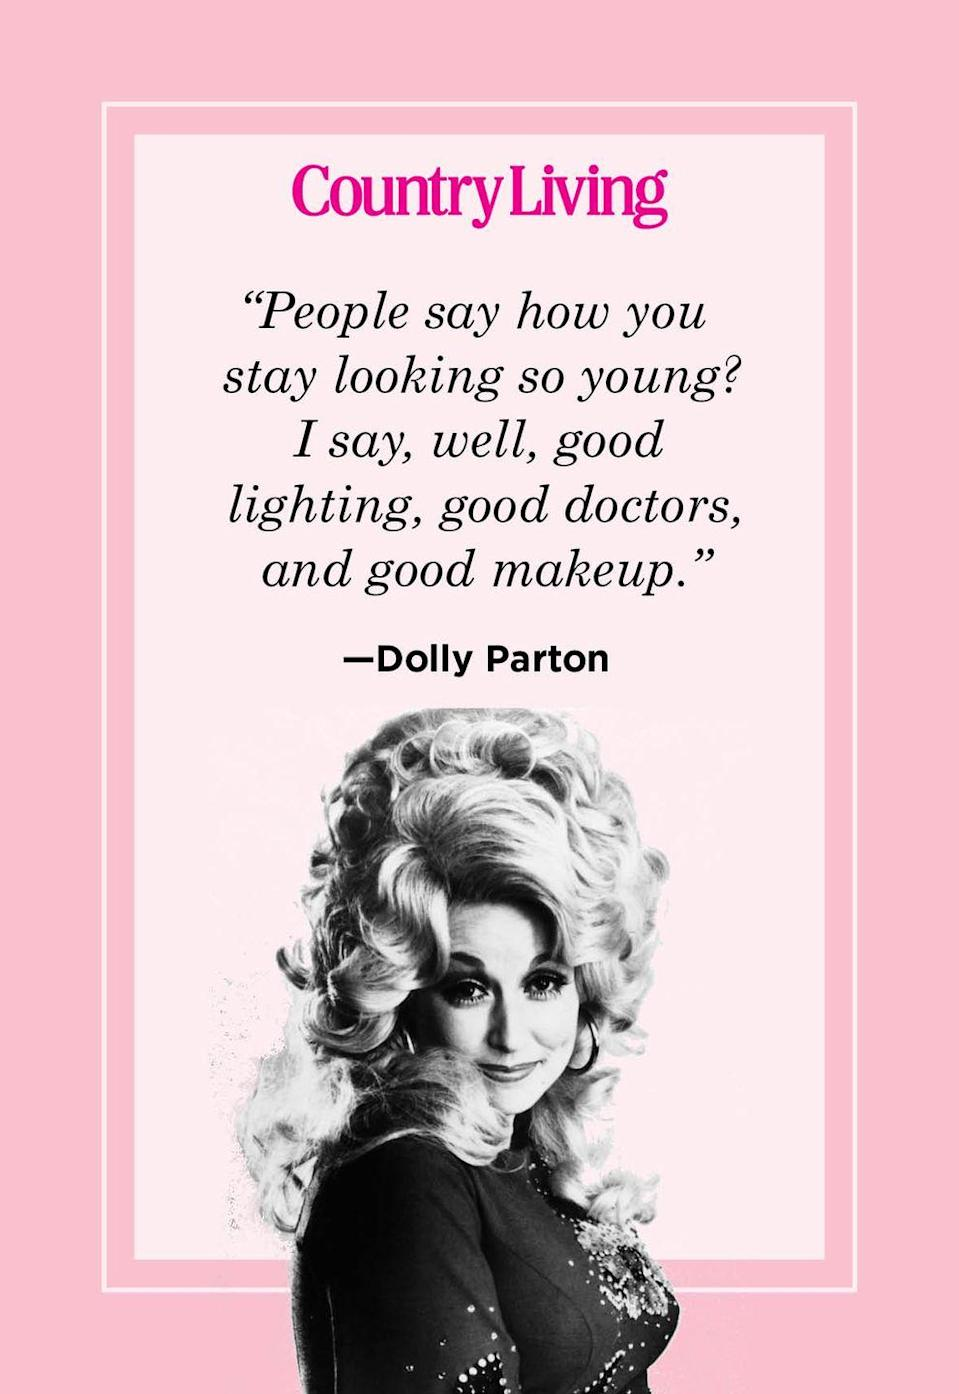 "<p>""People say how you stay looking so young? I say, well, good lighting, good doctors, and good makeup.""</p>"